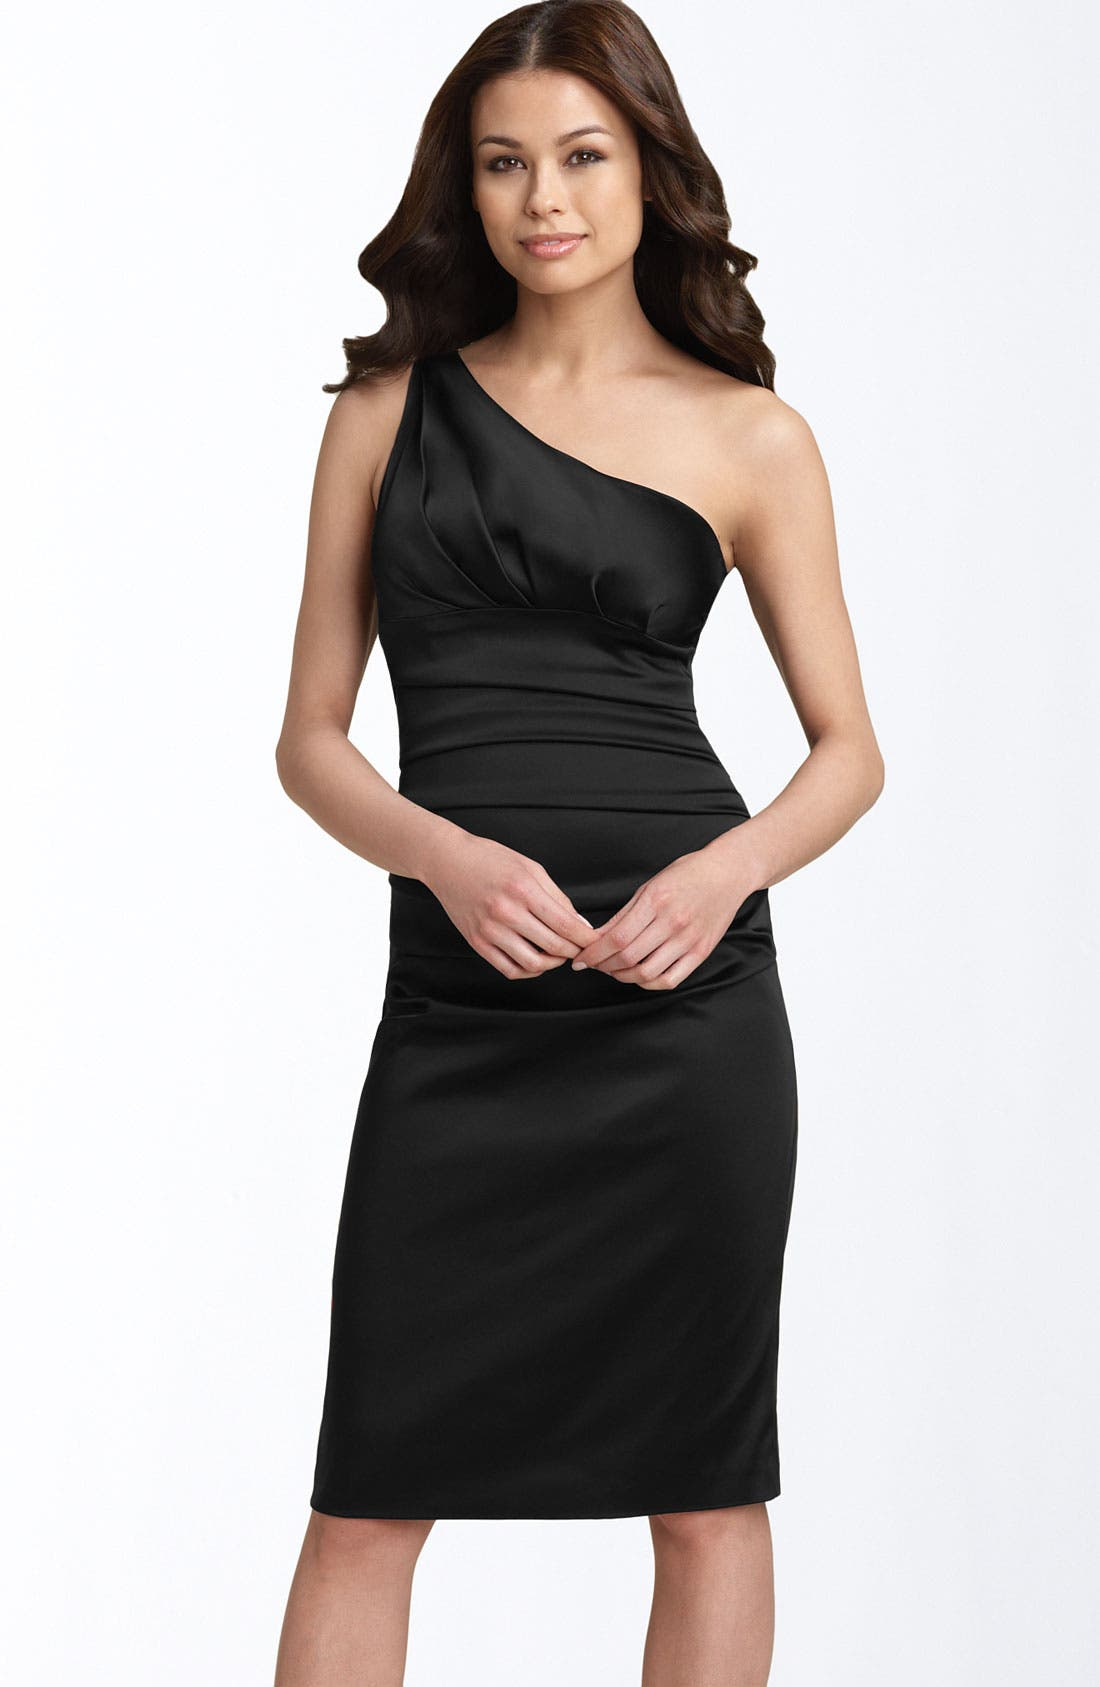 Alternate Image 1 Selected - Suzi Chin for Maggy Boutique Stretch Satin Sheath Dress